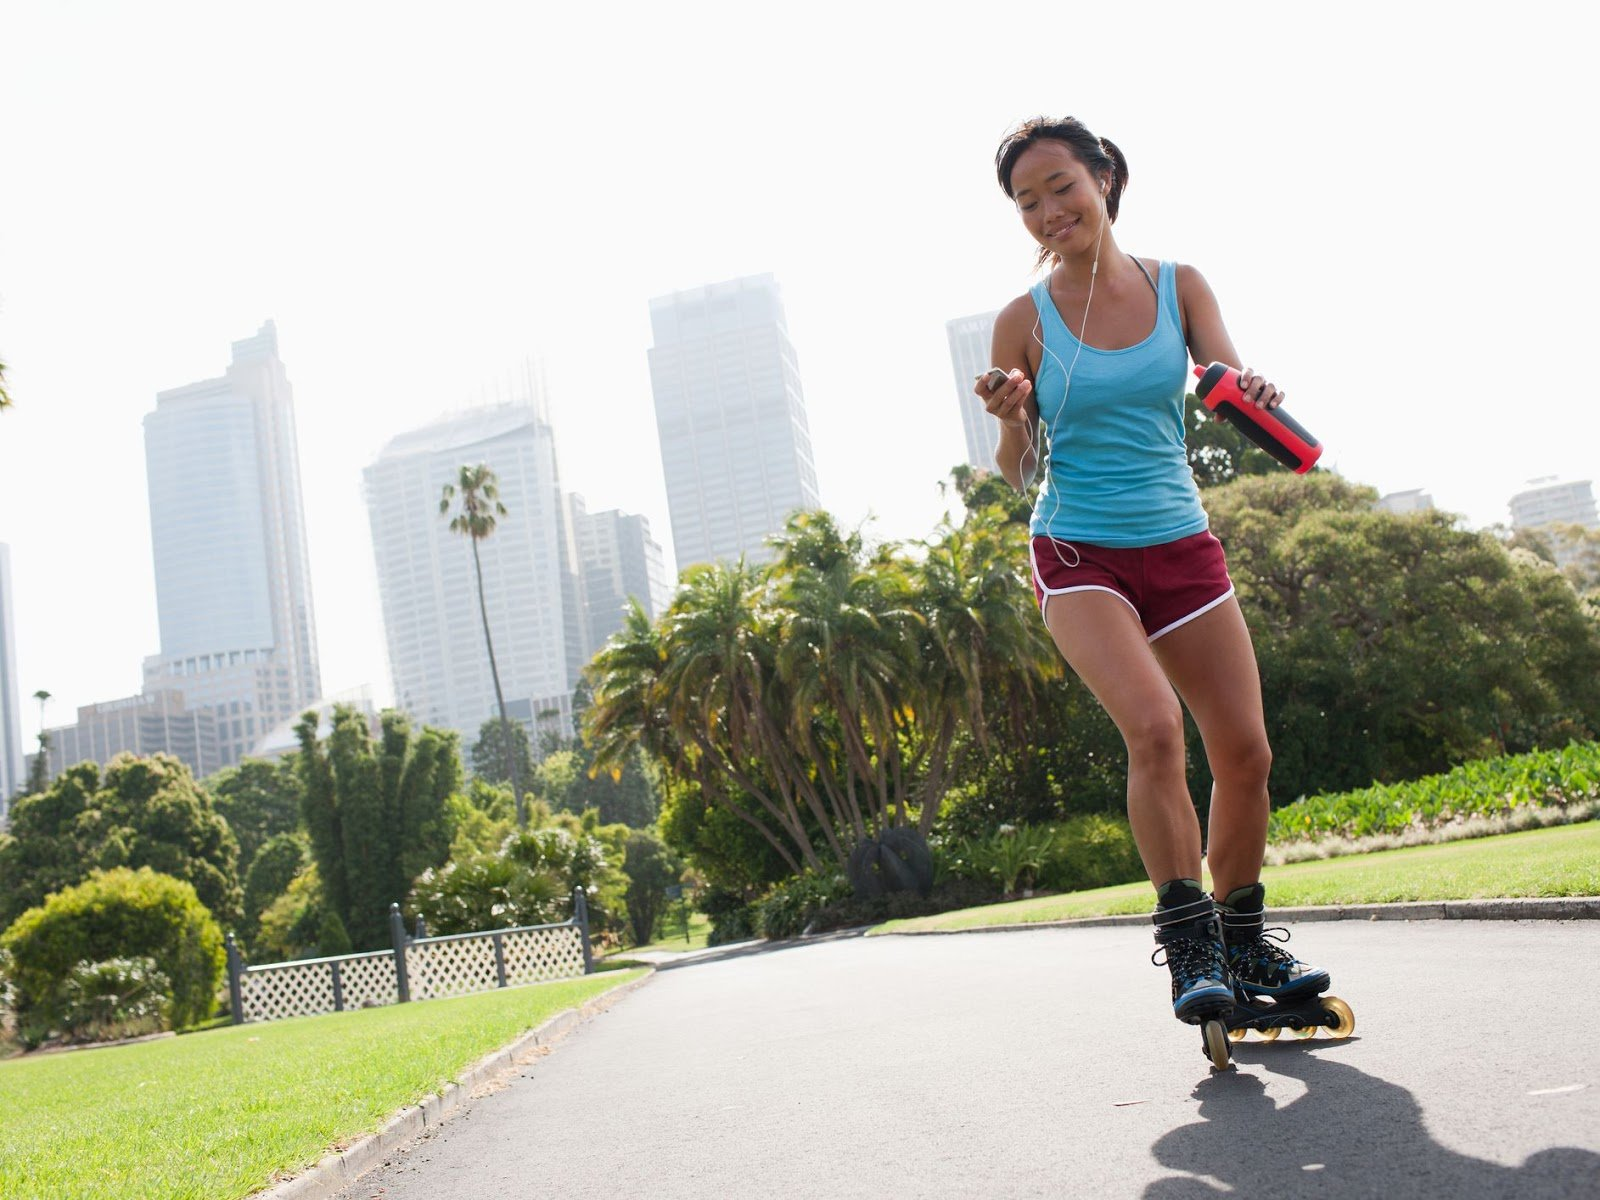 How to Do a One Foot Spin on Roller Skates – No. 1 Guide